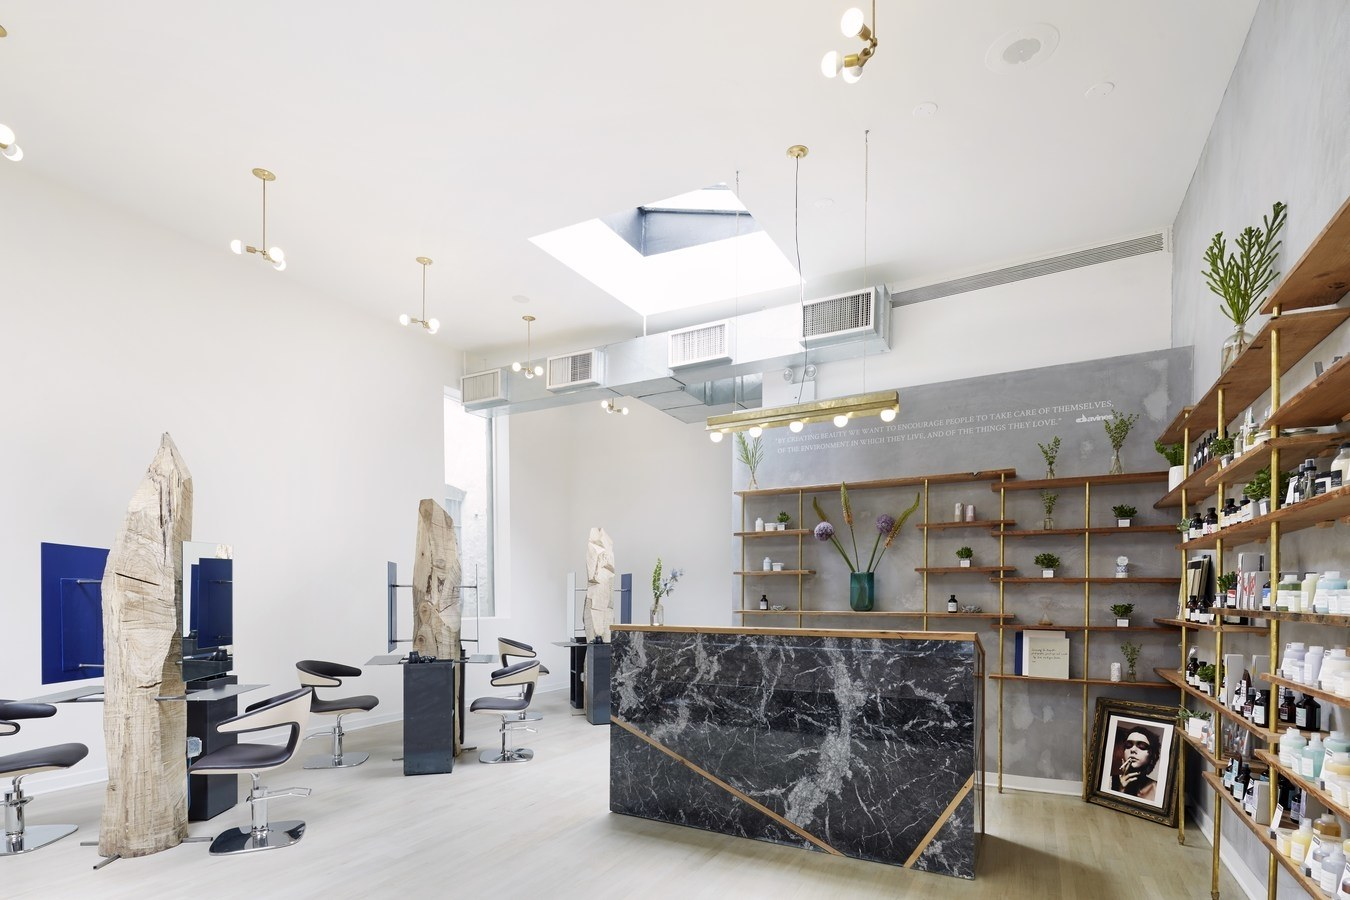 hairdressing salon design ideas interior decoration in interior stylists new york Microcement in a hair salon